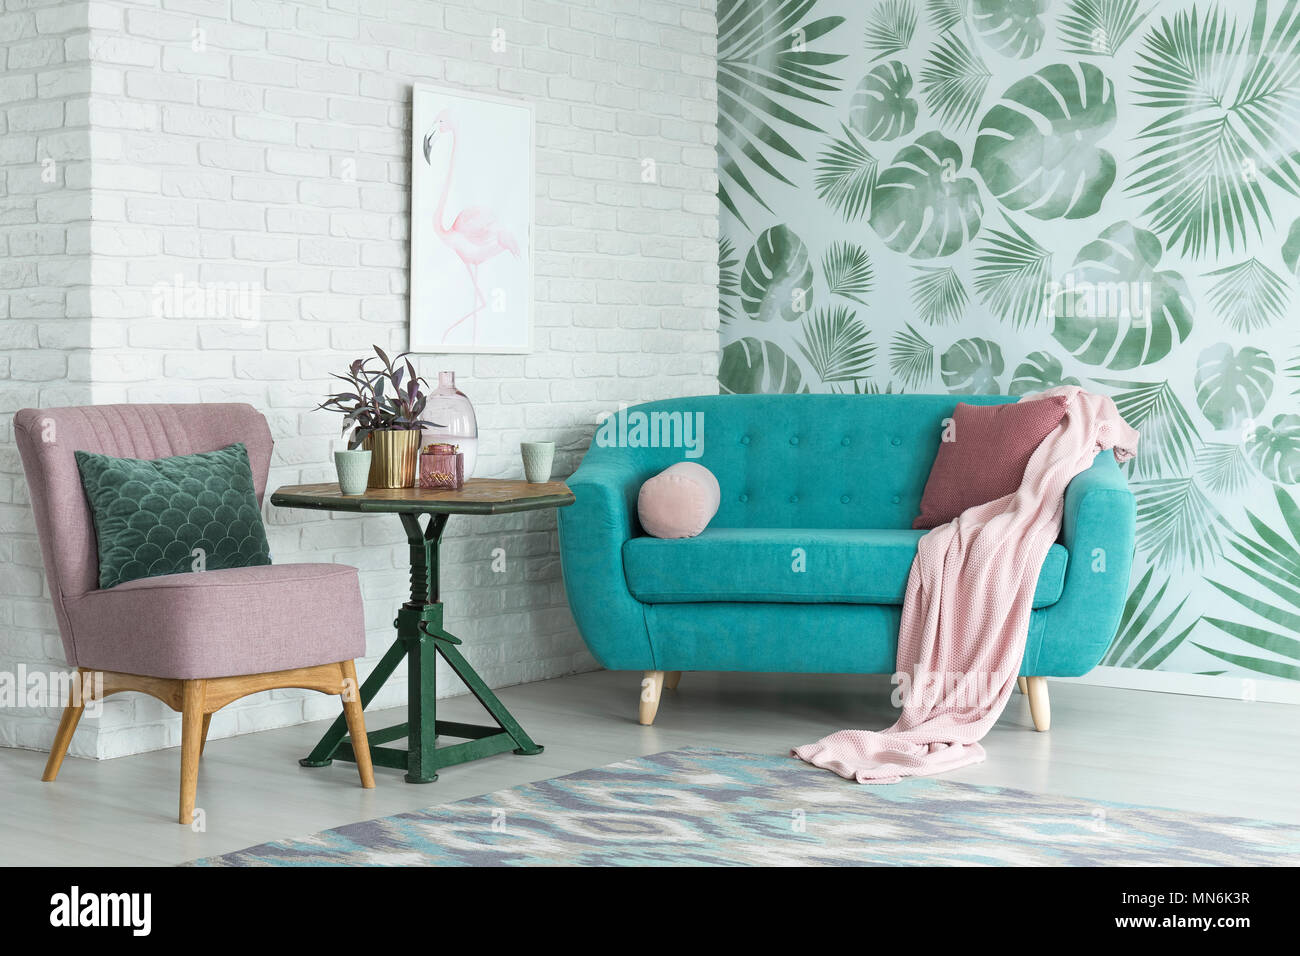 Green table with a plant between pink chair and blue sofa in floral ...